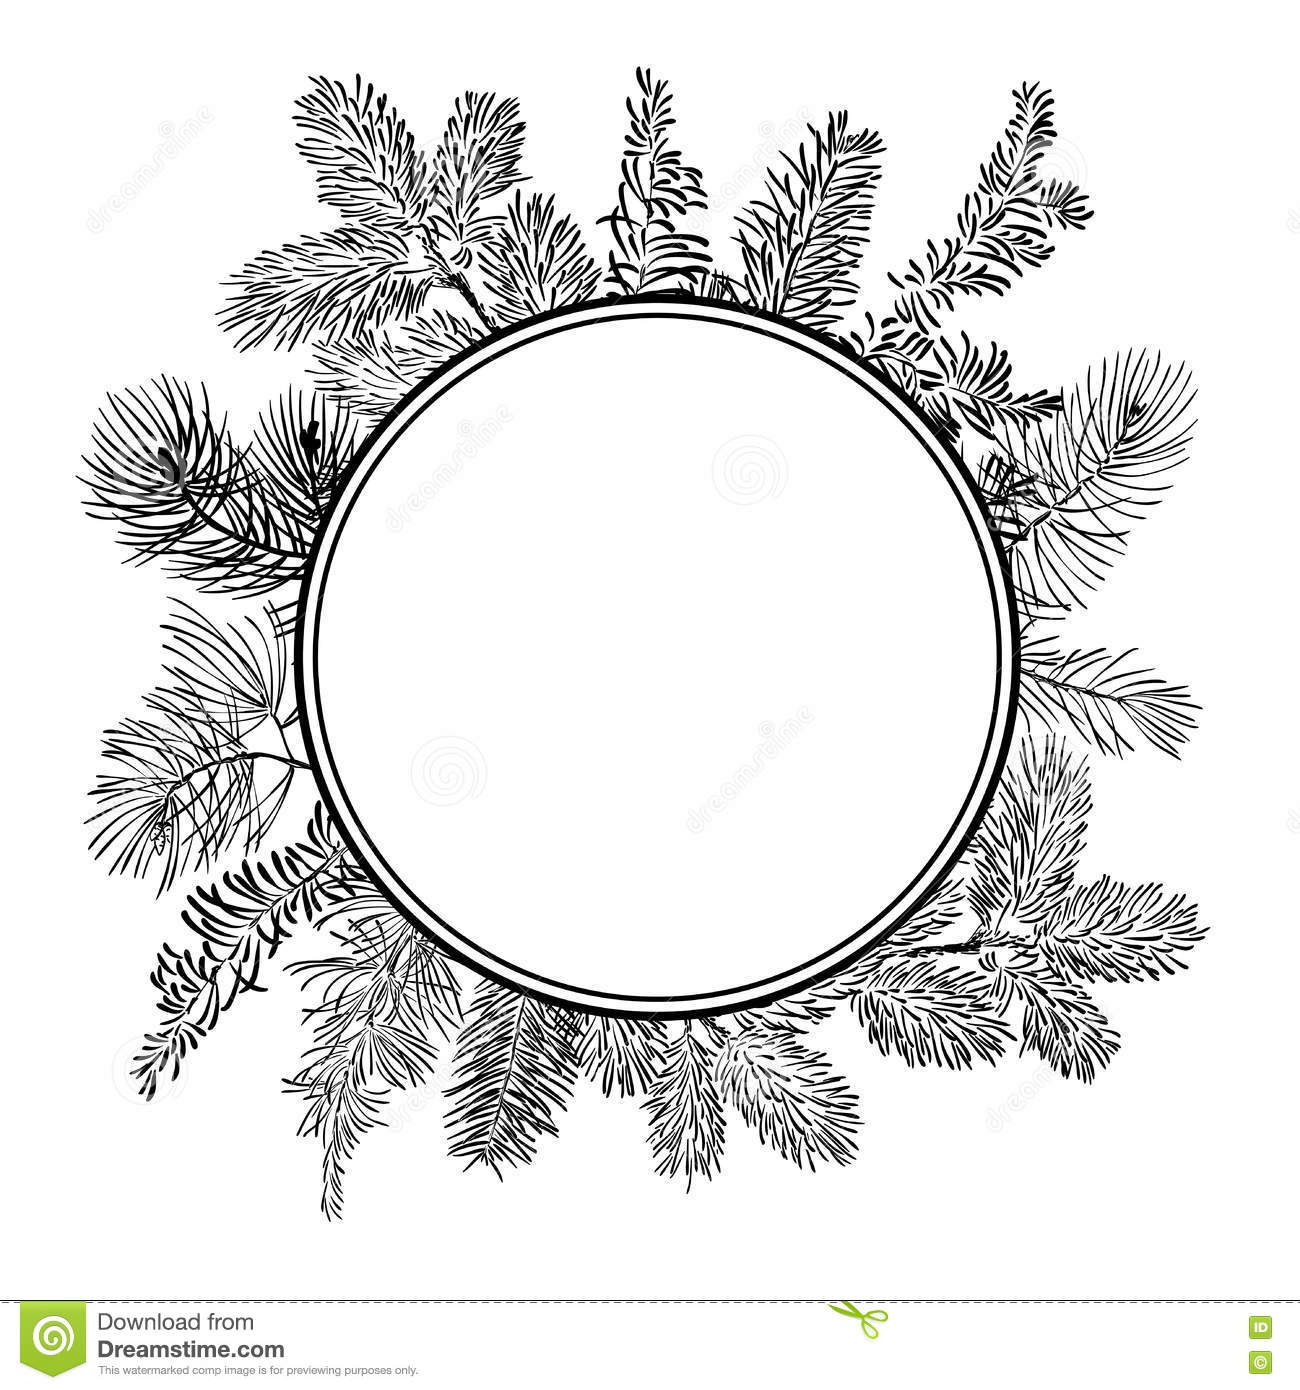 Christmas Branch Vector.Vector Christmas Branch In Circle On White Background Stock